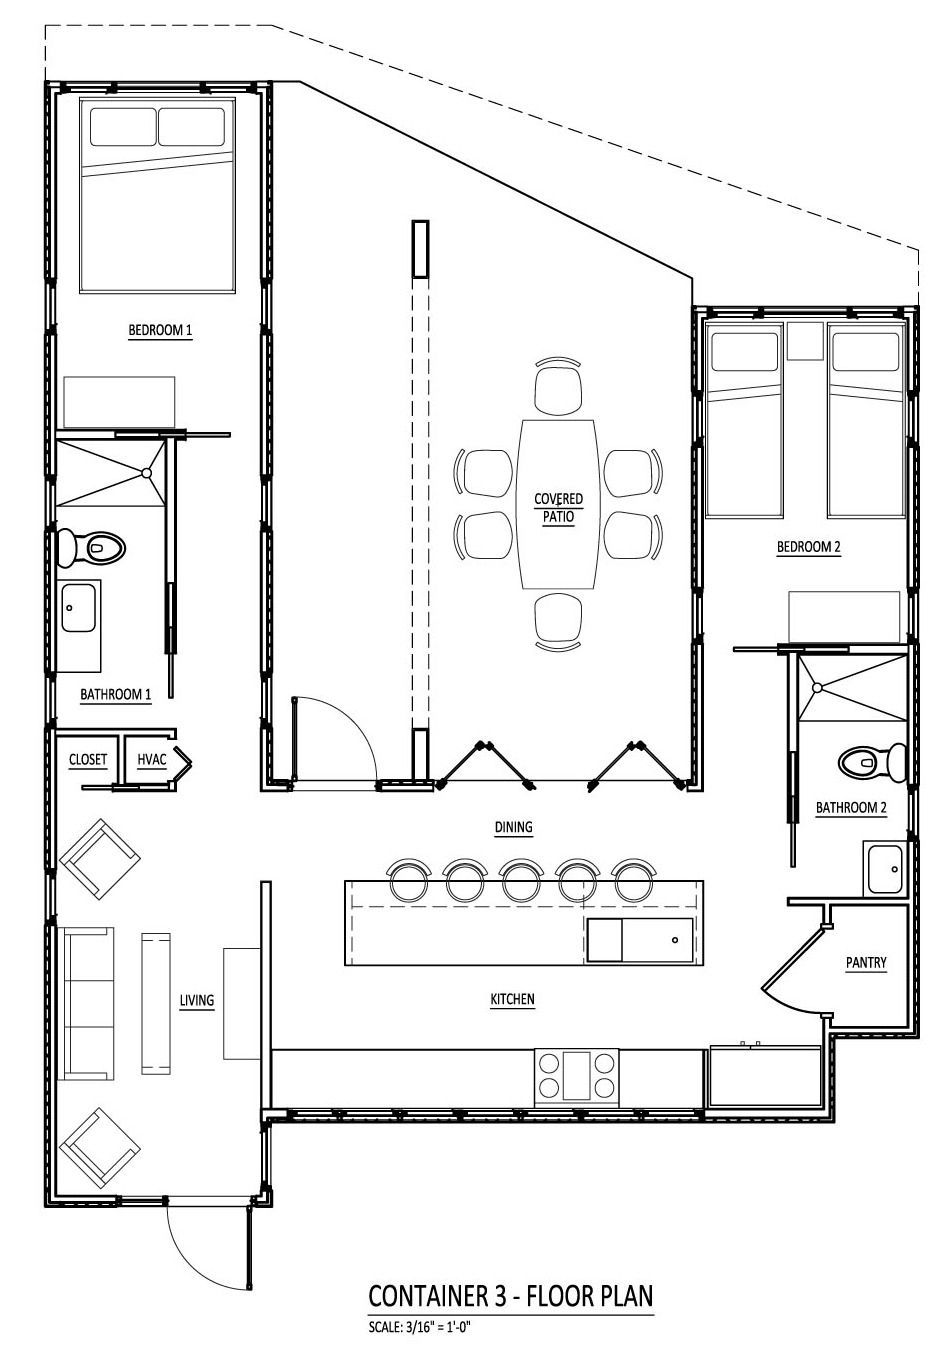 U shaped floor plan using only 3 #shipping #containers #jsiglobal ...